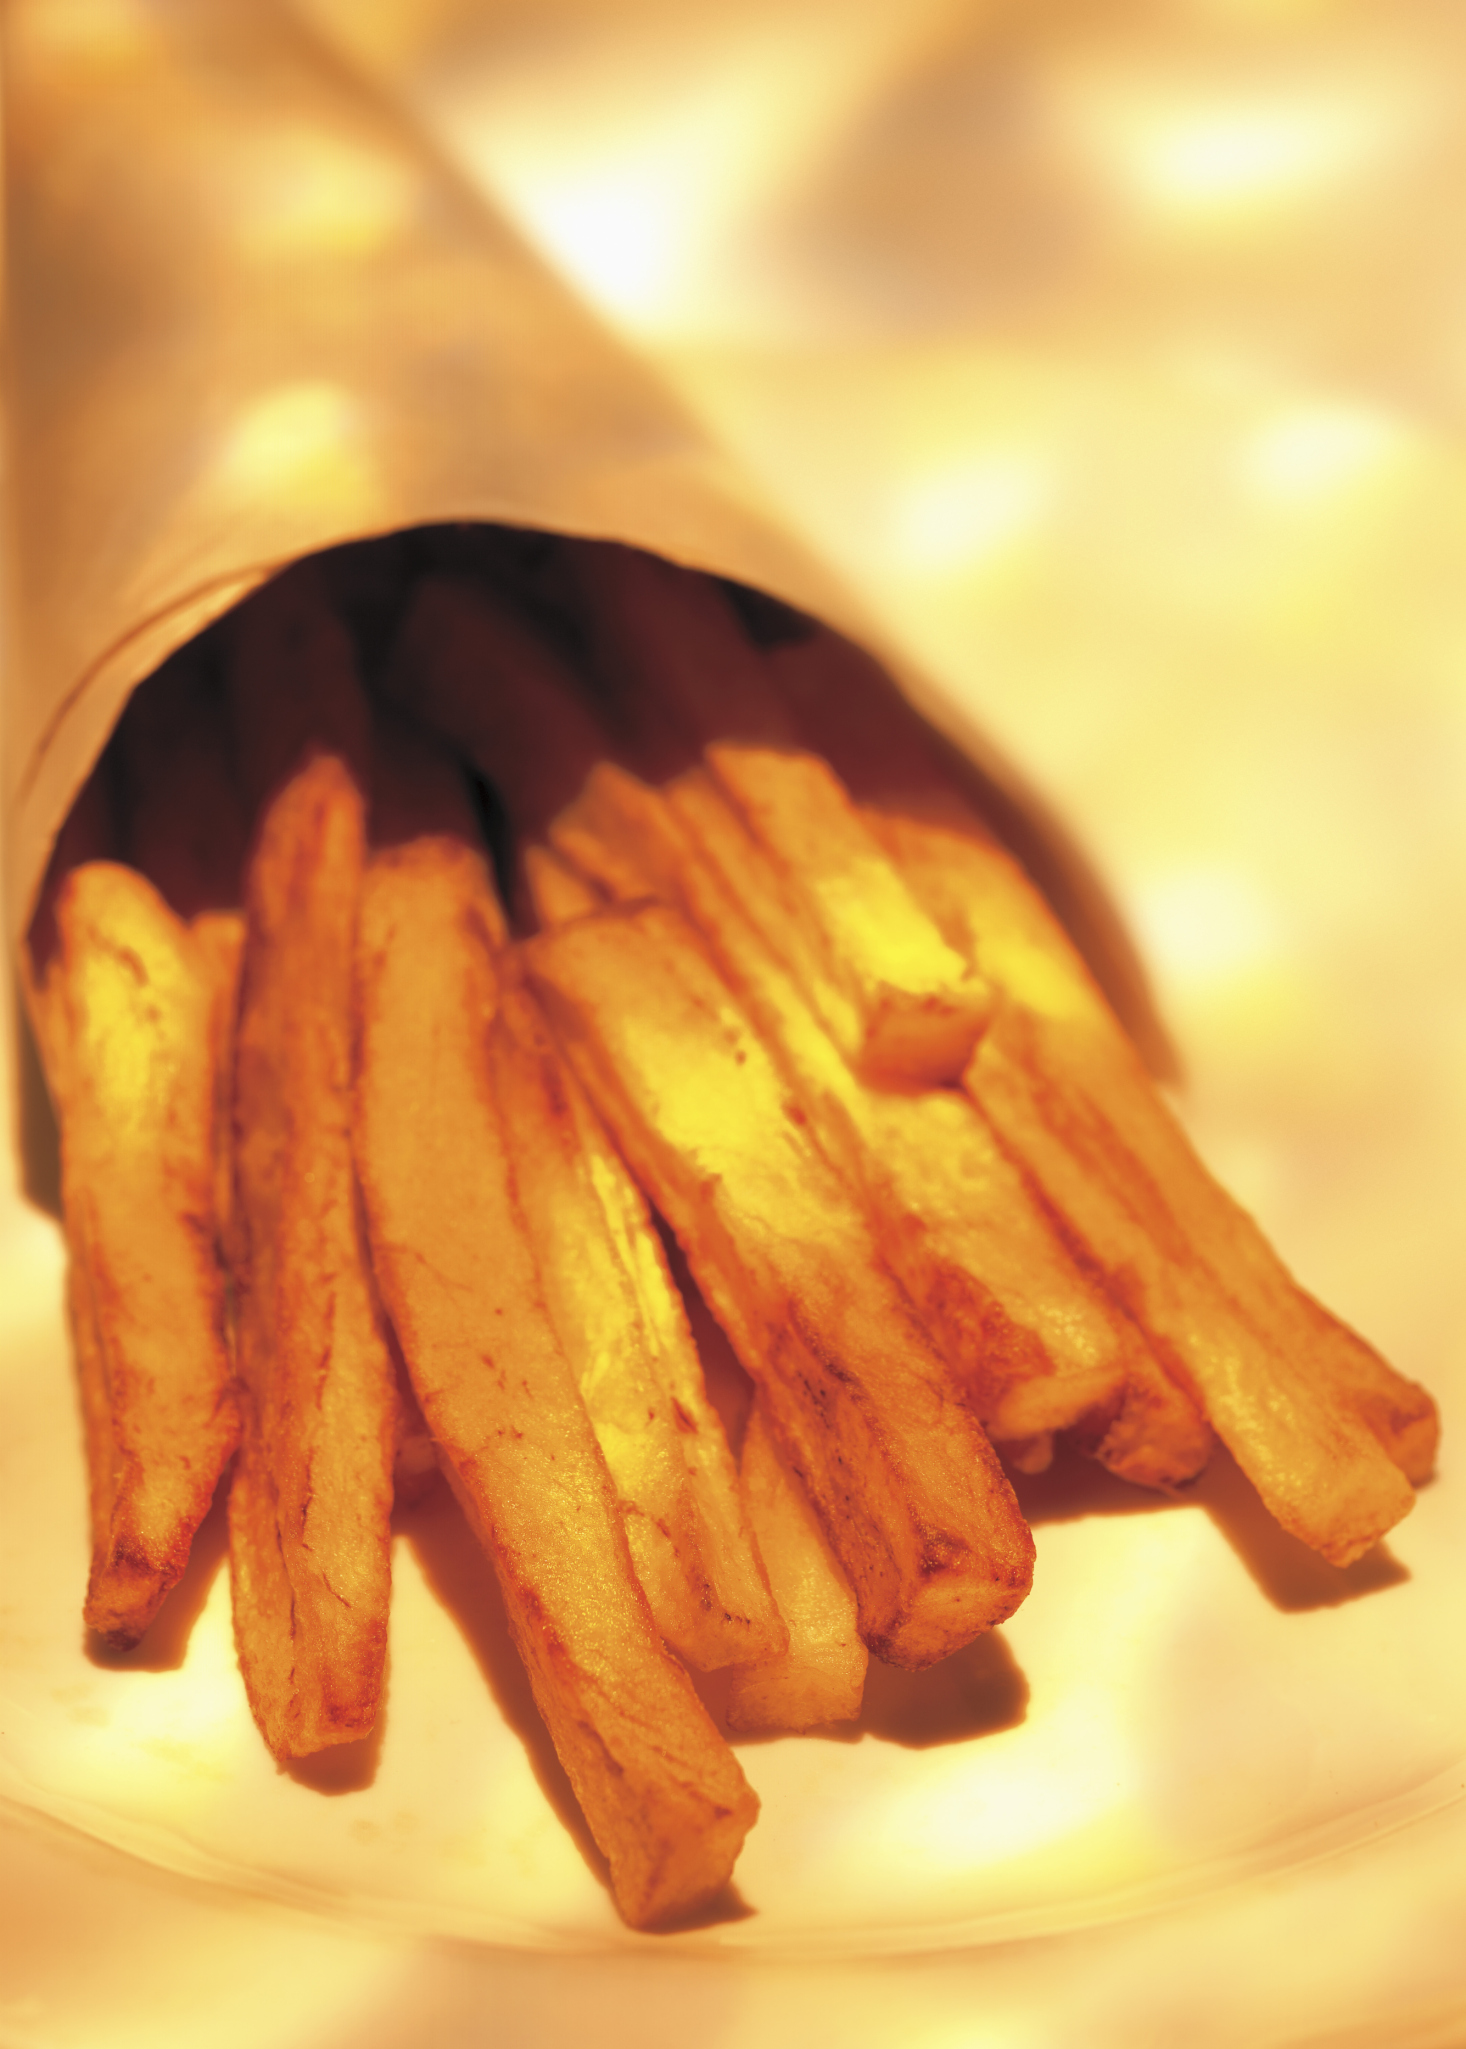 Sweet potato fries are an excellent source of potassium.